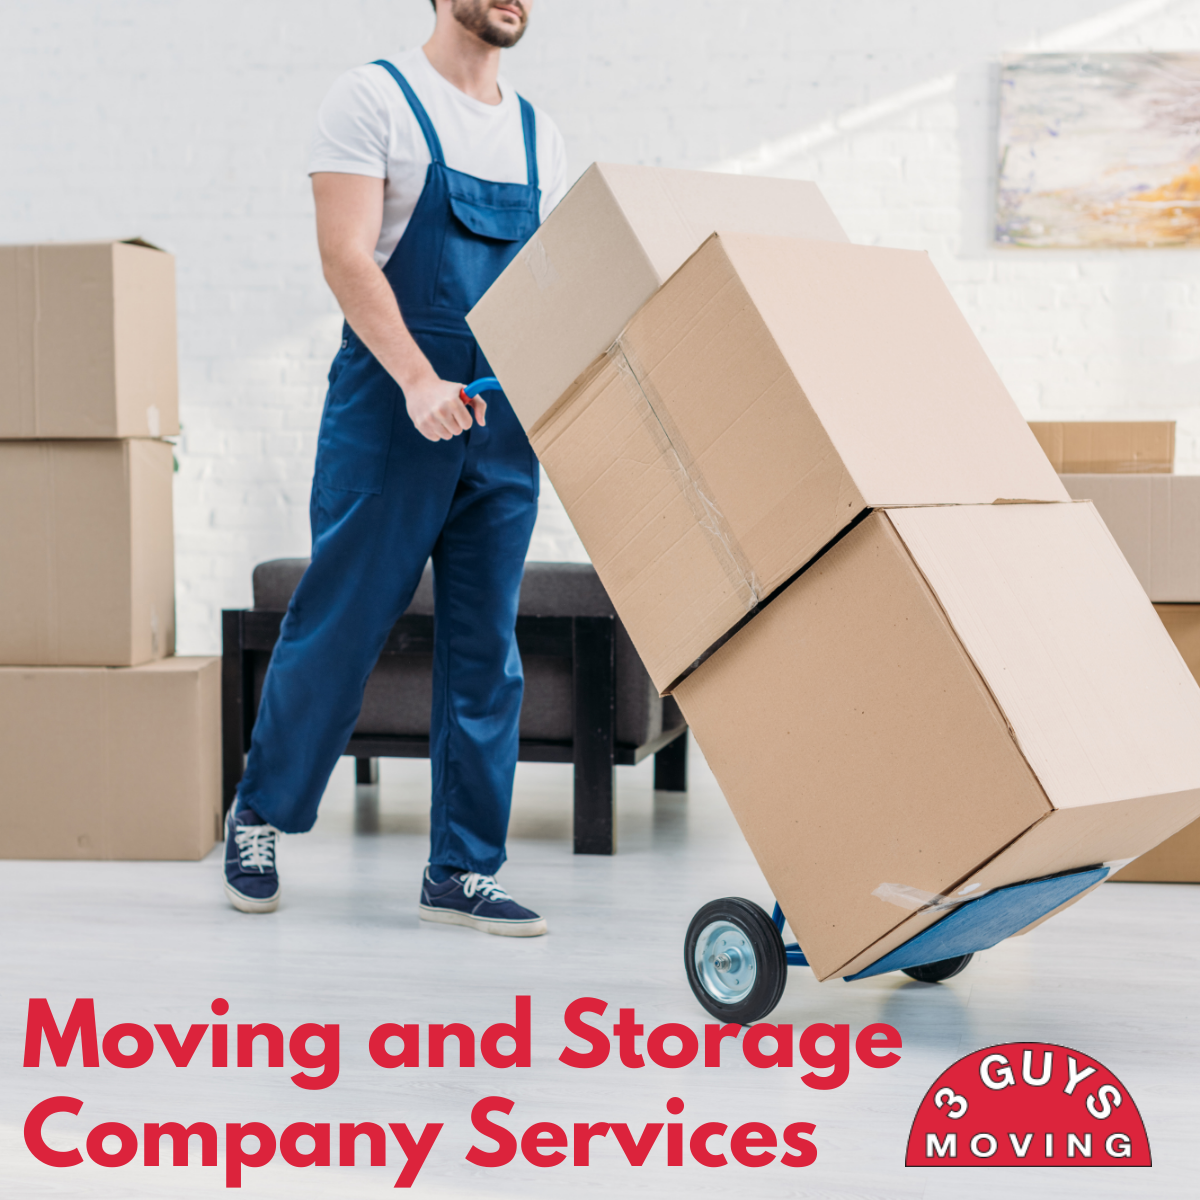 Moving and Storage Company Services - Moving and Storage Company Services